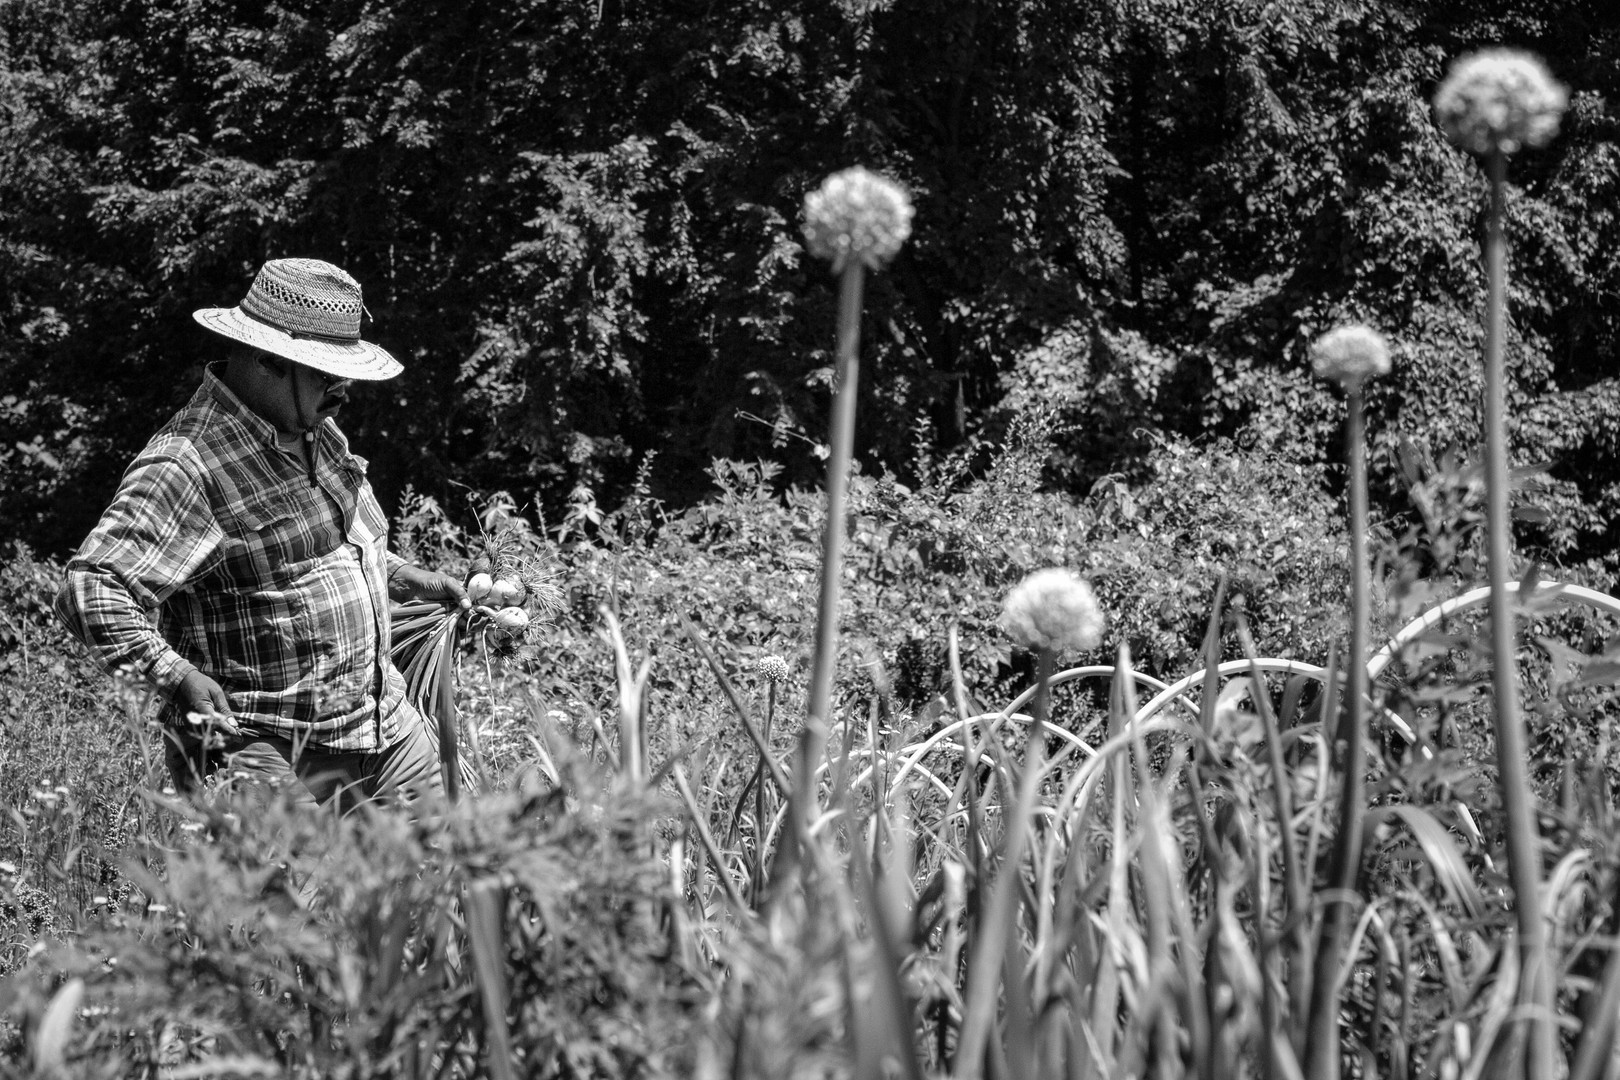 Herb Sr., in the Onion Field